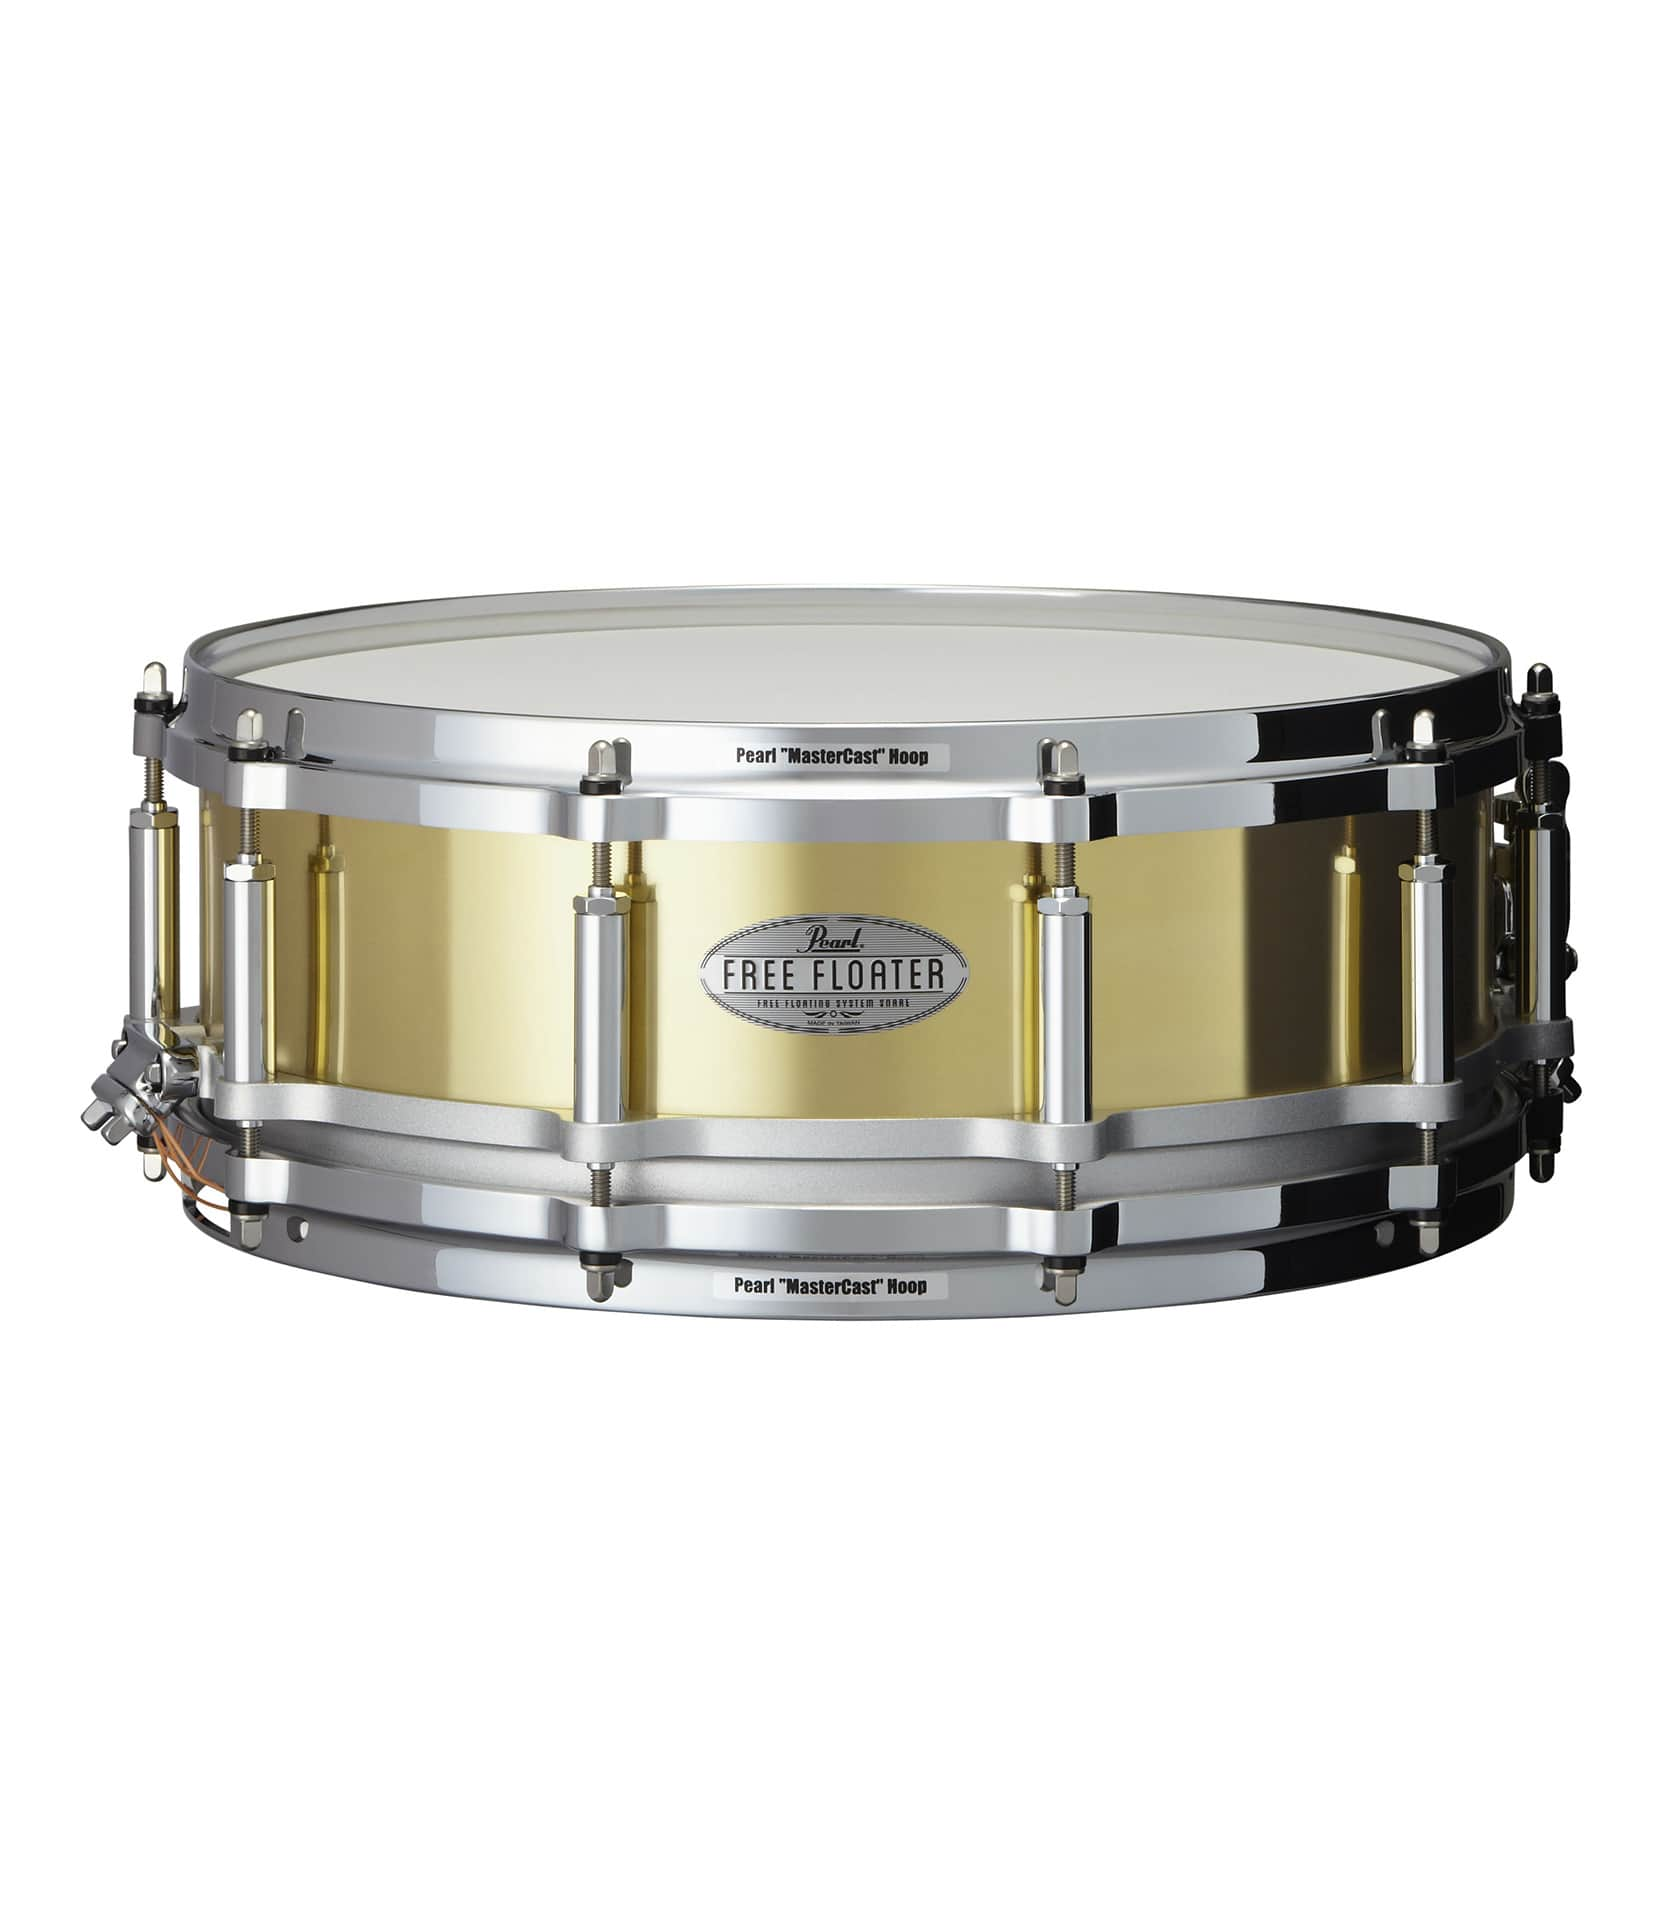 Pearl - FTBR1450 14 x 5 Inches Free Floater Snare Drum